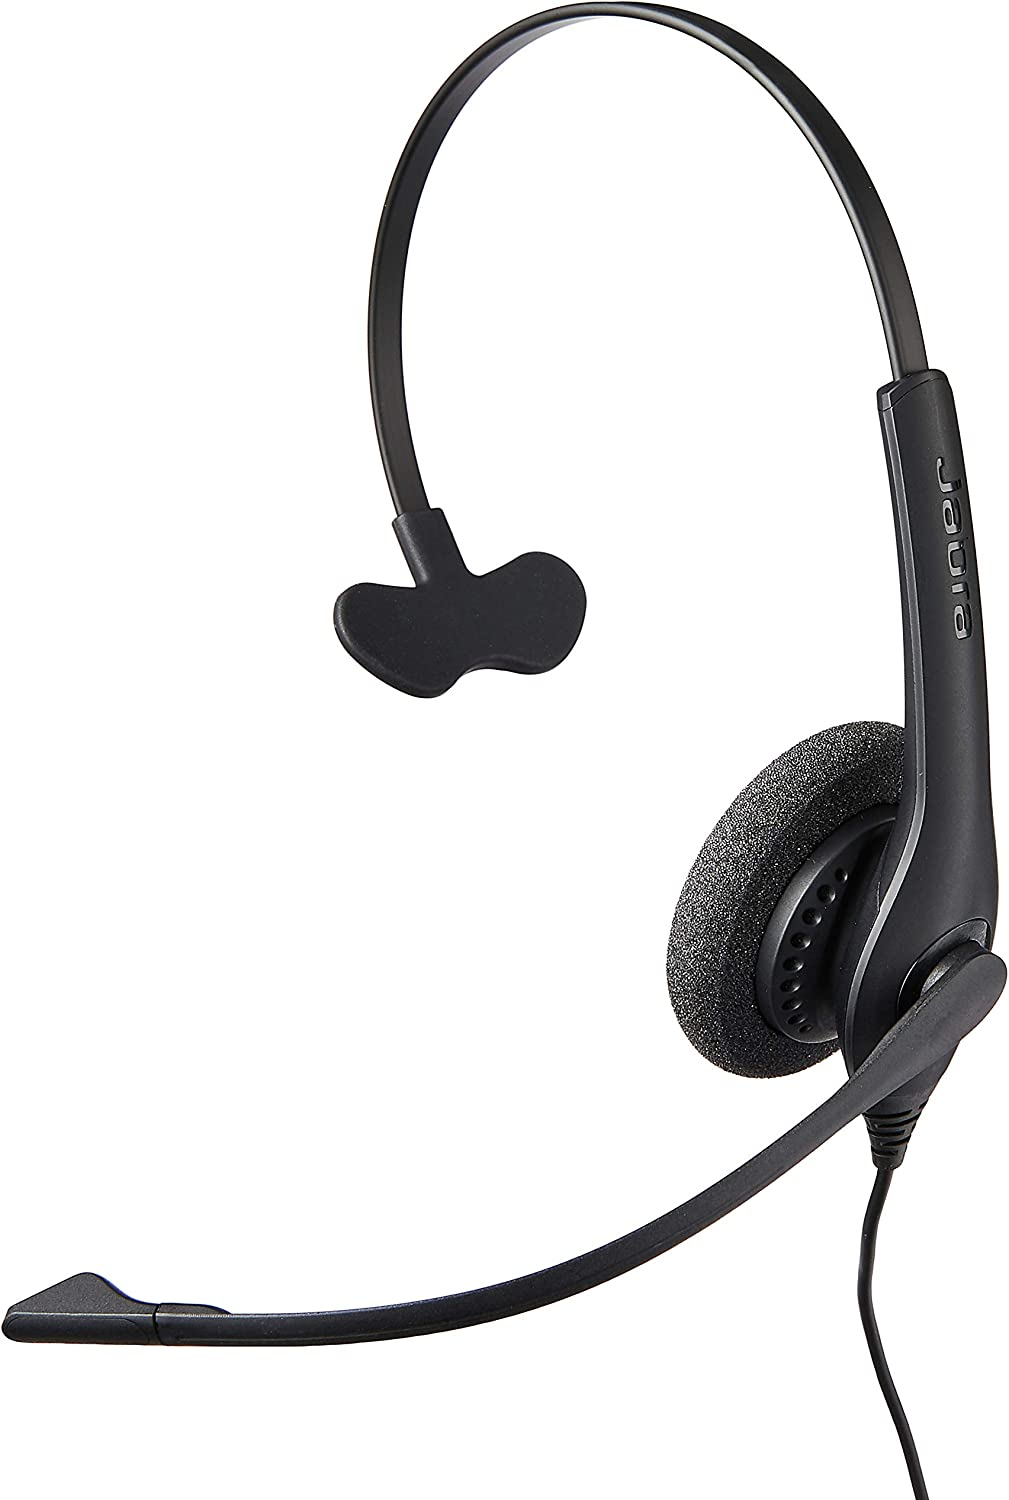 Jabra Biz 1500 Mono - Professional UC Wired Headset